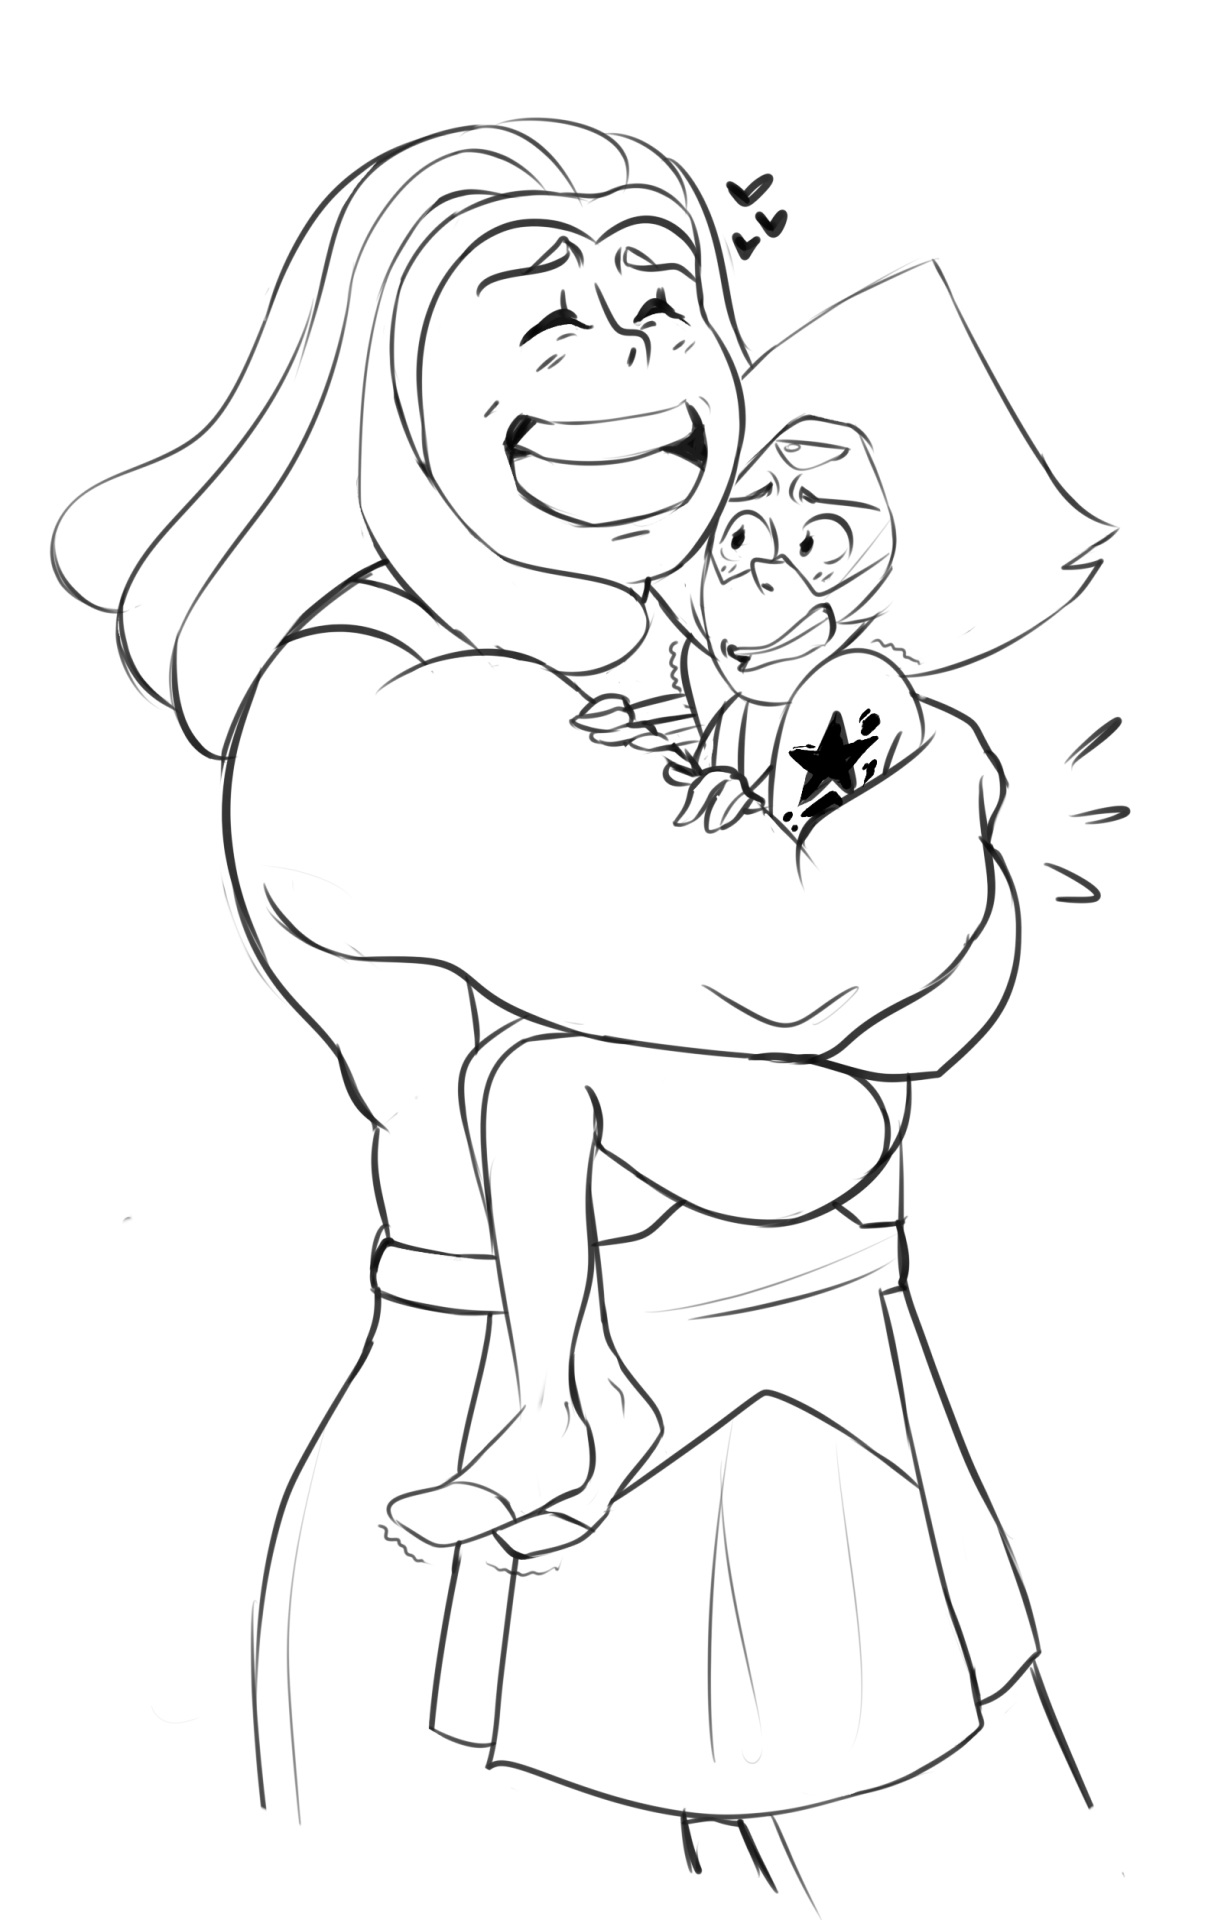 lineart commission i did for @tripodarts based of @elasticitymudflap barnsmuth idea! it was really cute to draw ;;